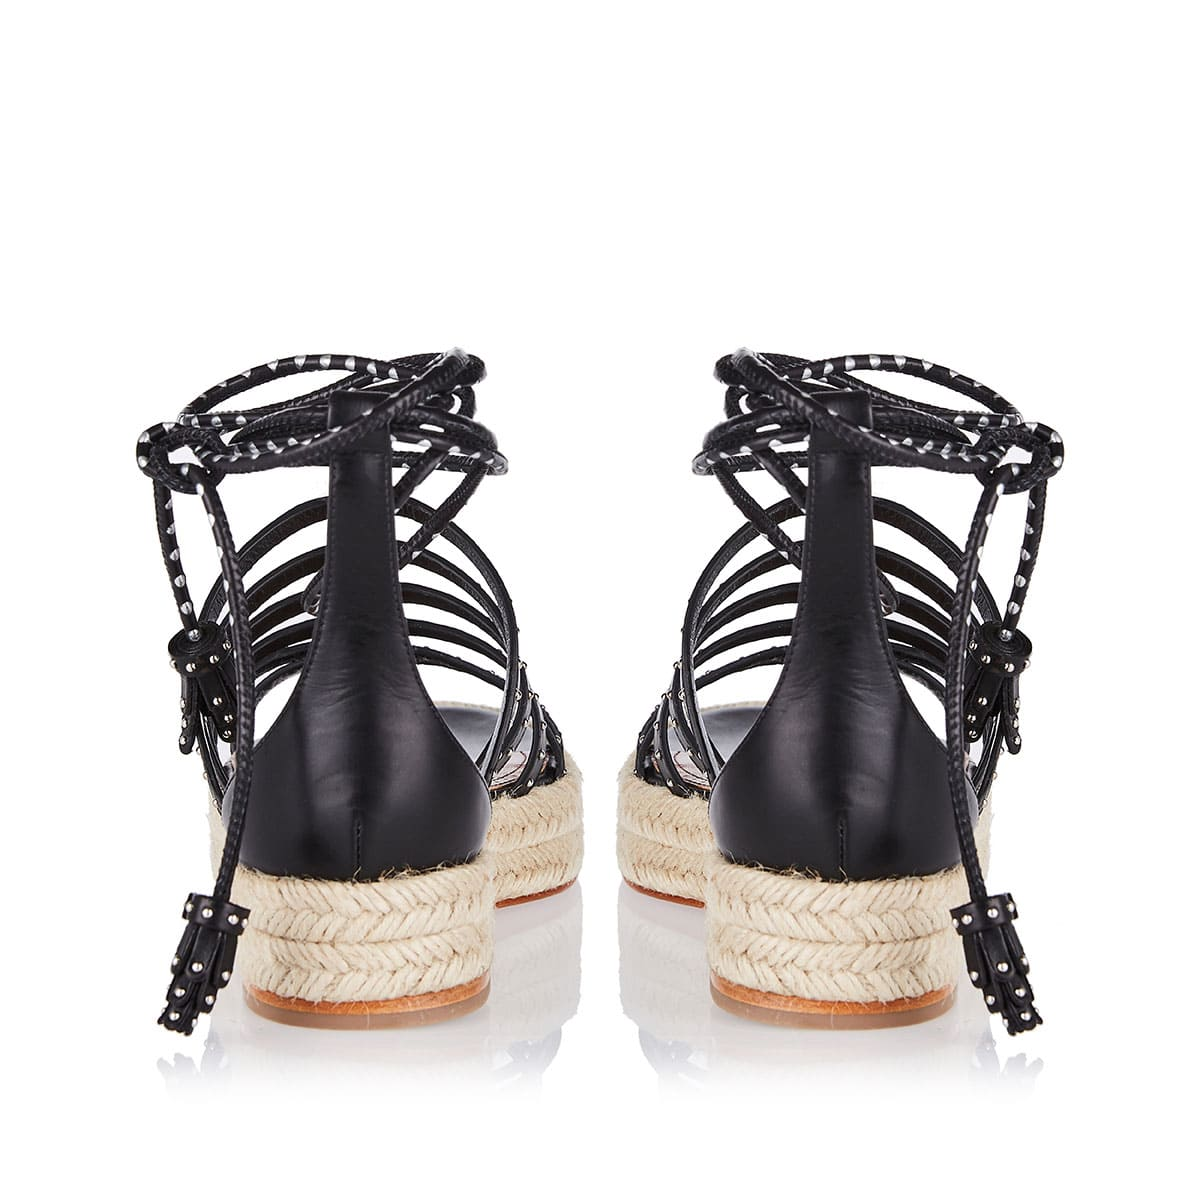 Lace-up studded sandals